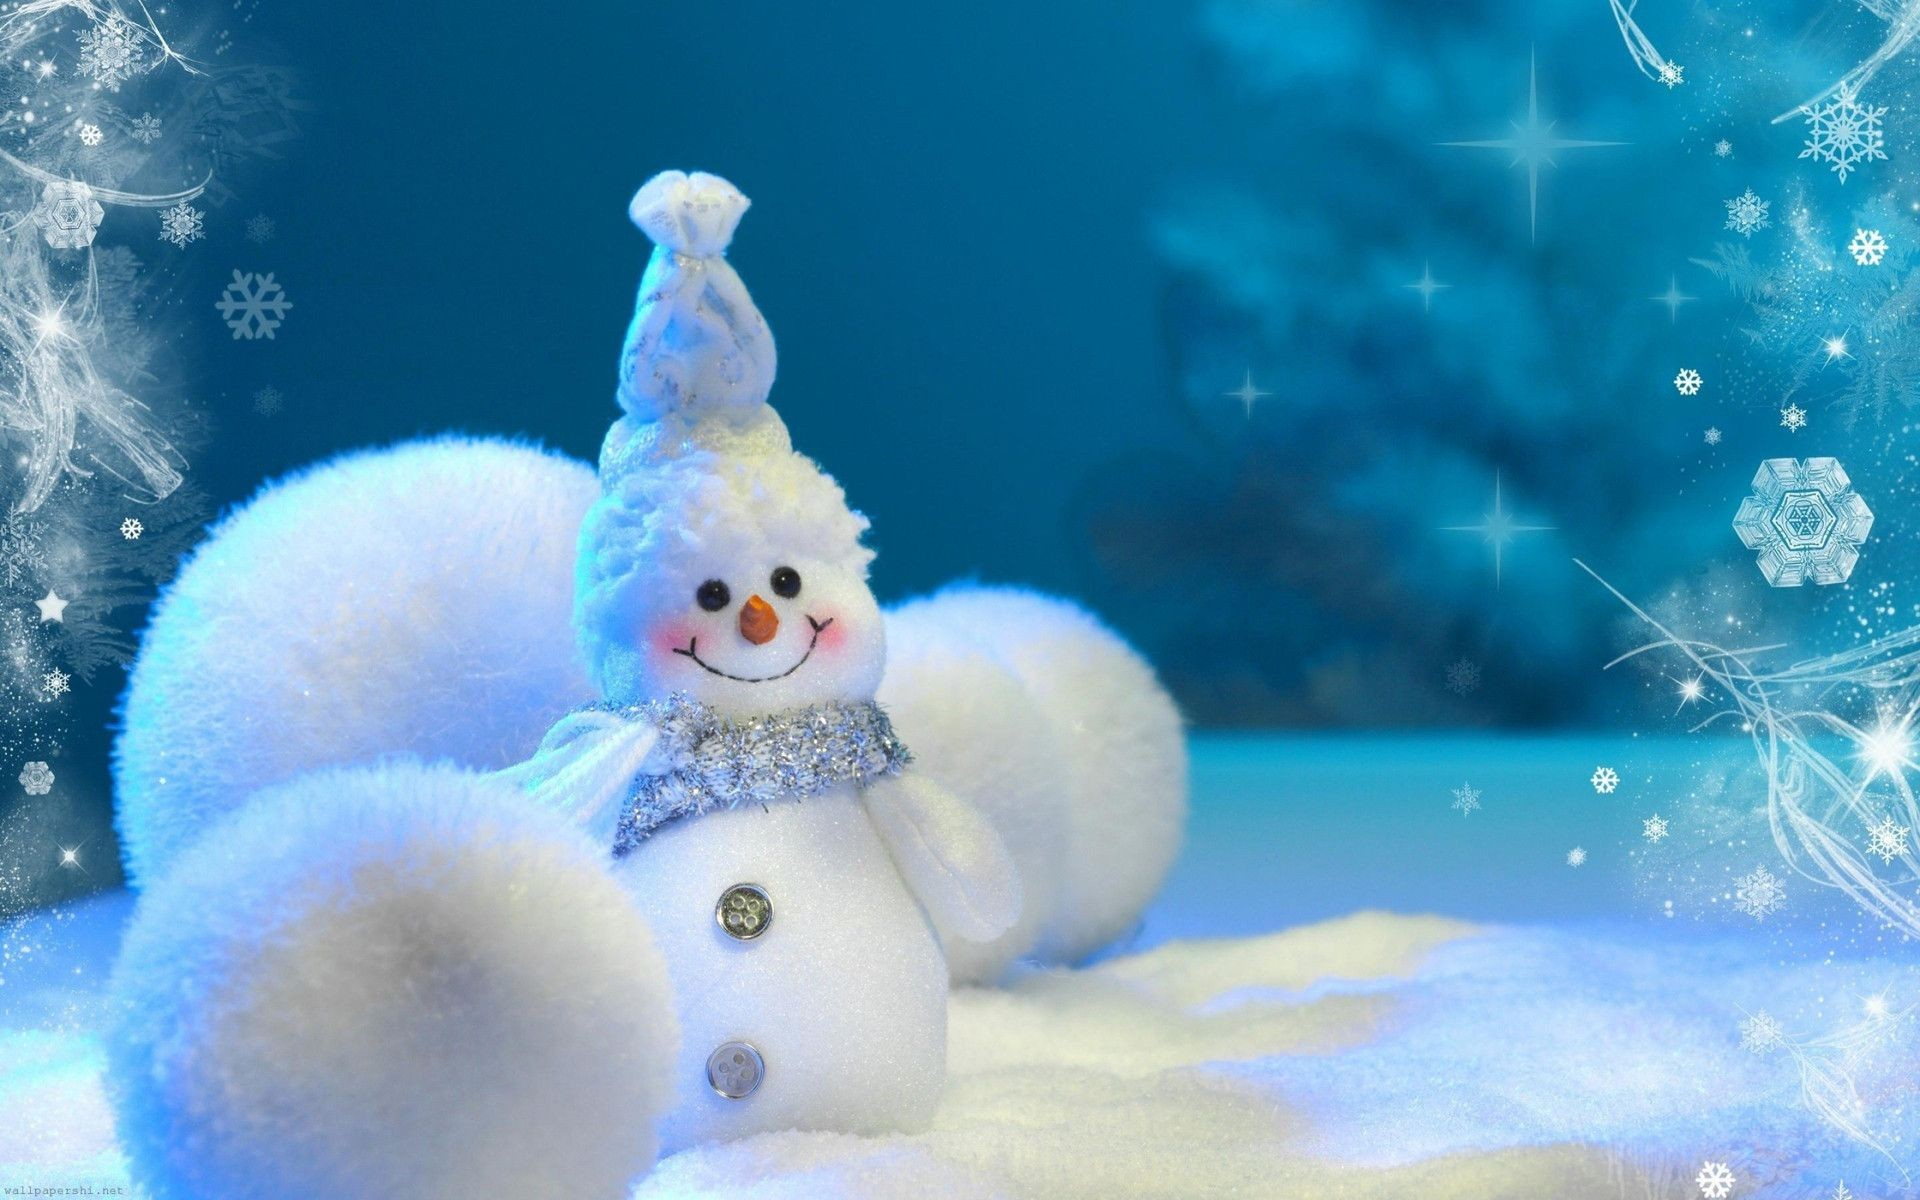 christmas desktop wallpaper ·① download free cool backgrounds for